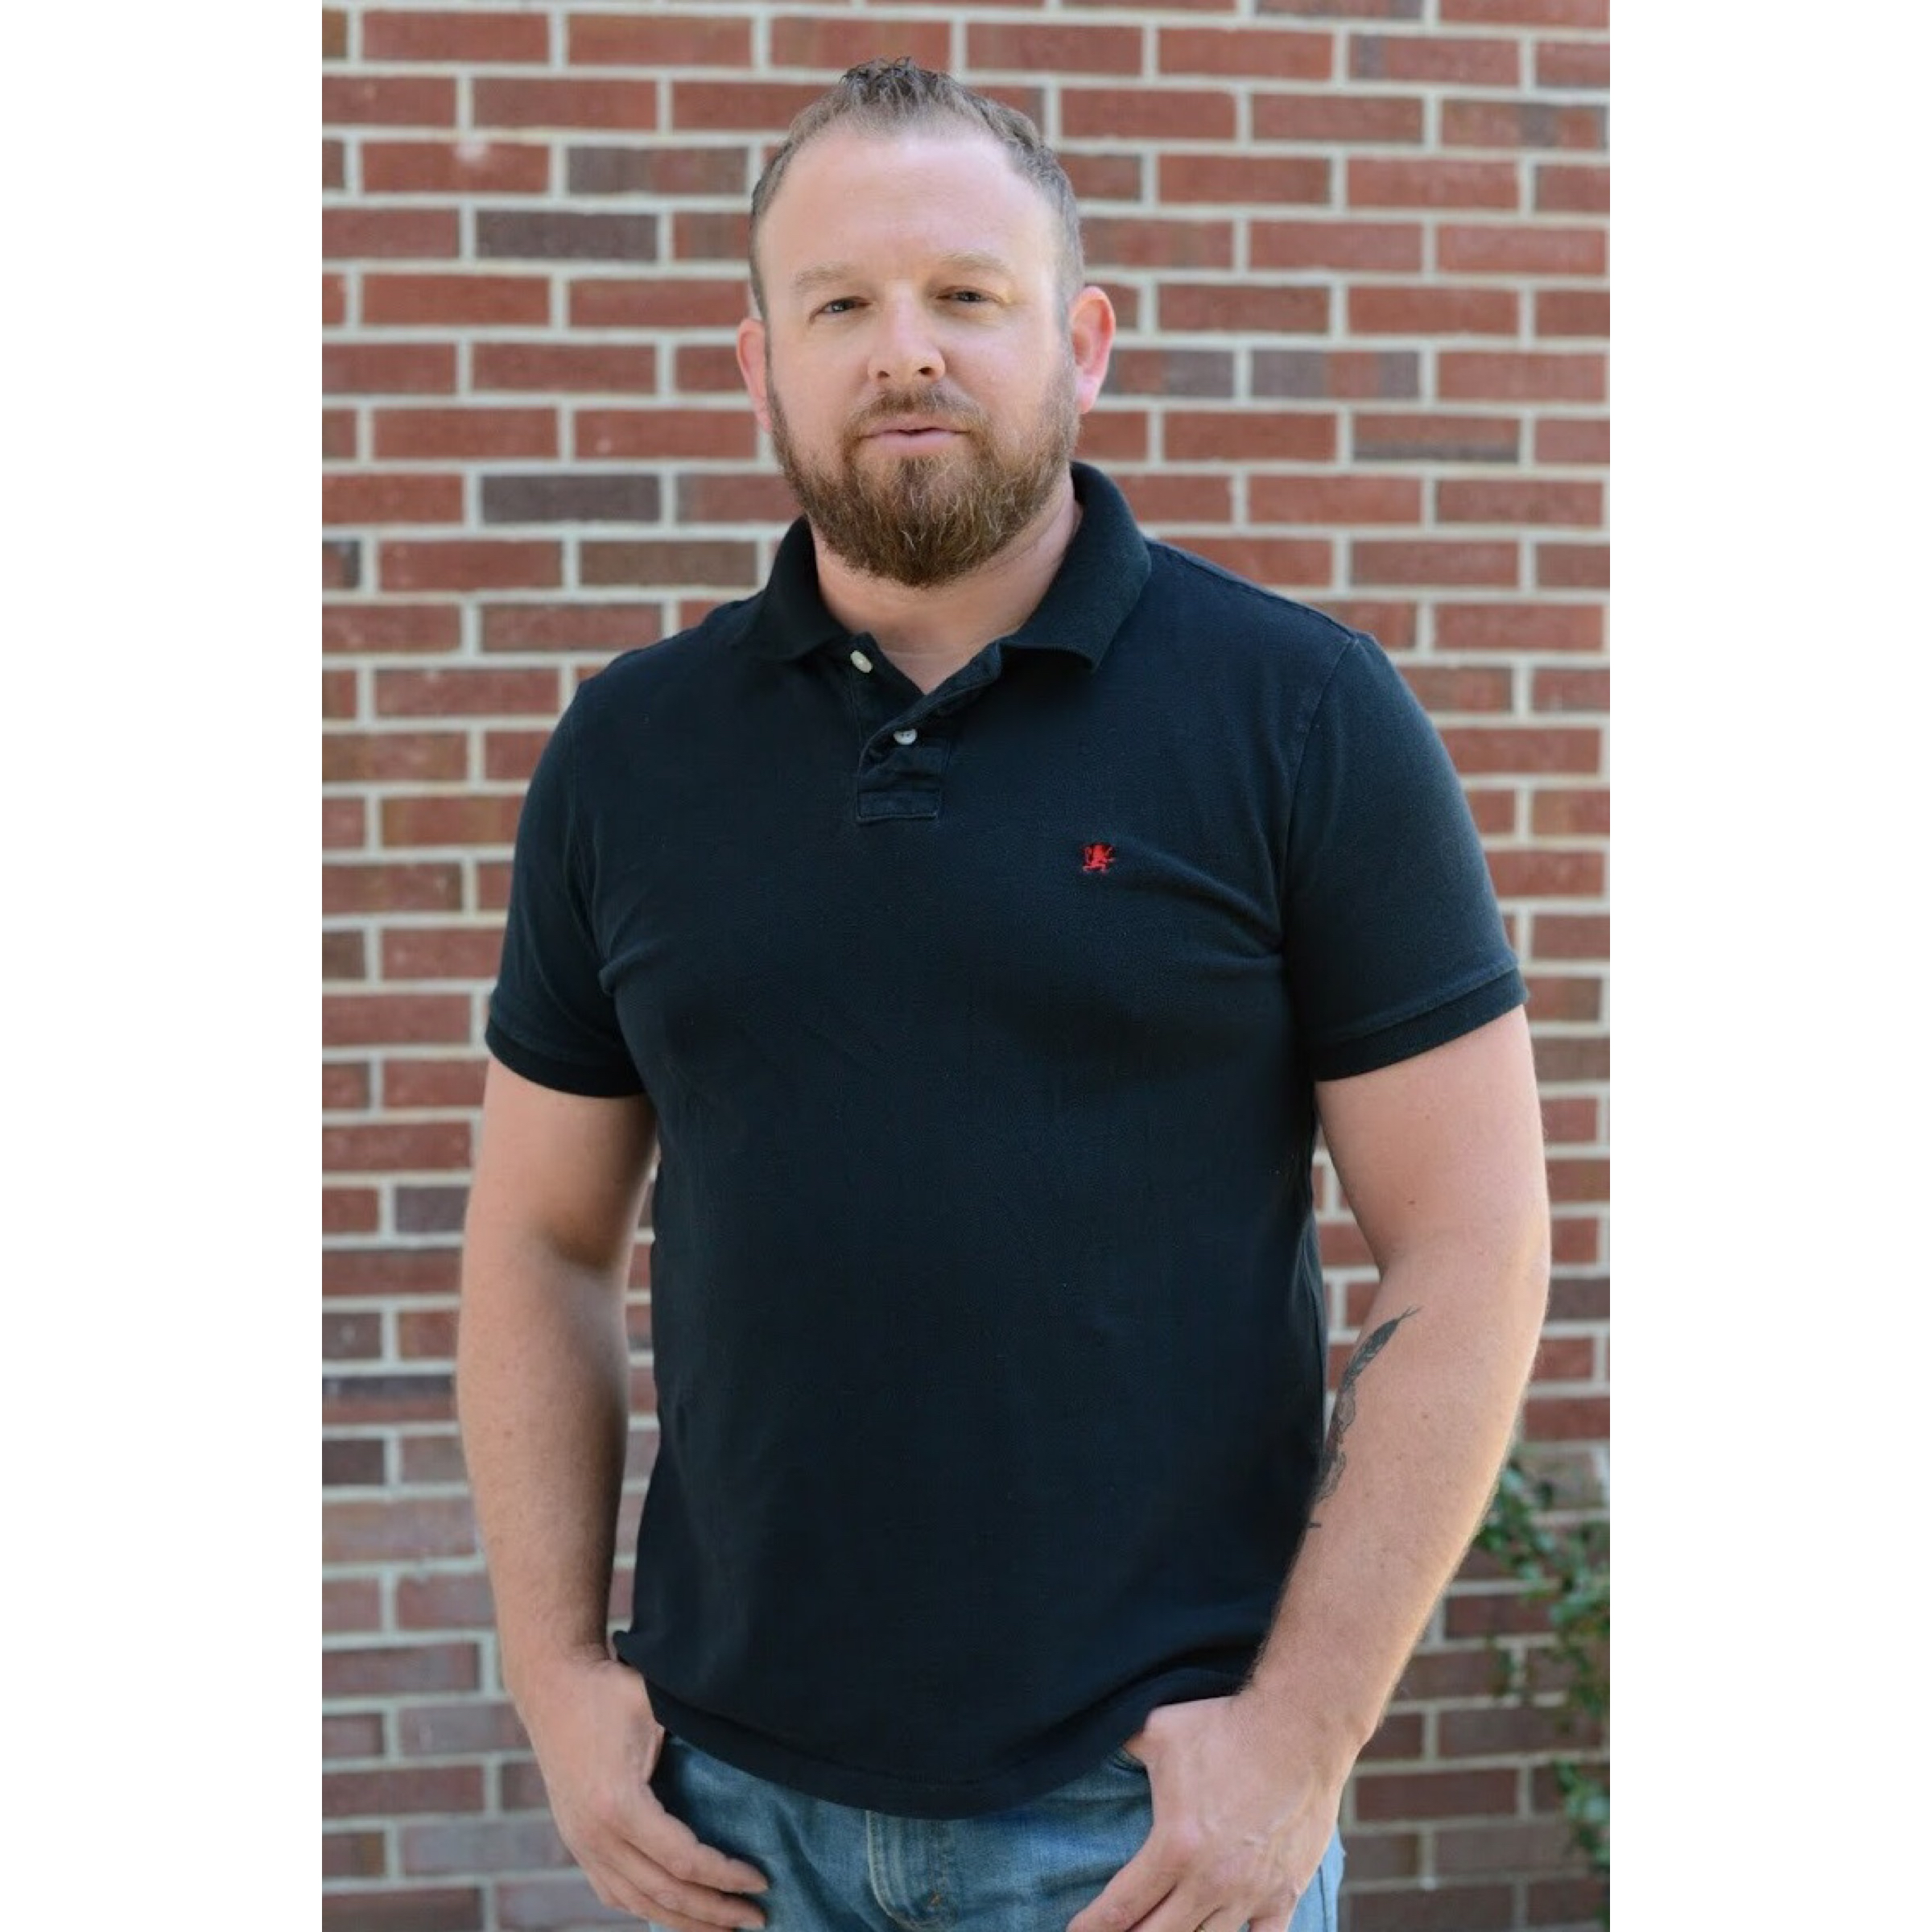 Aaron Dininny has served as the Lead pastor of OV Church since 2012. He and his wife Katie have four daughters and one son.